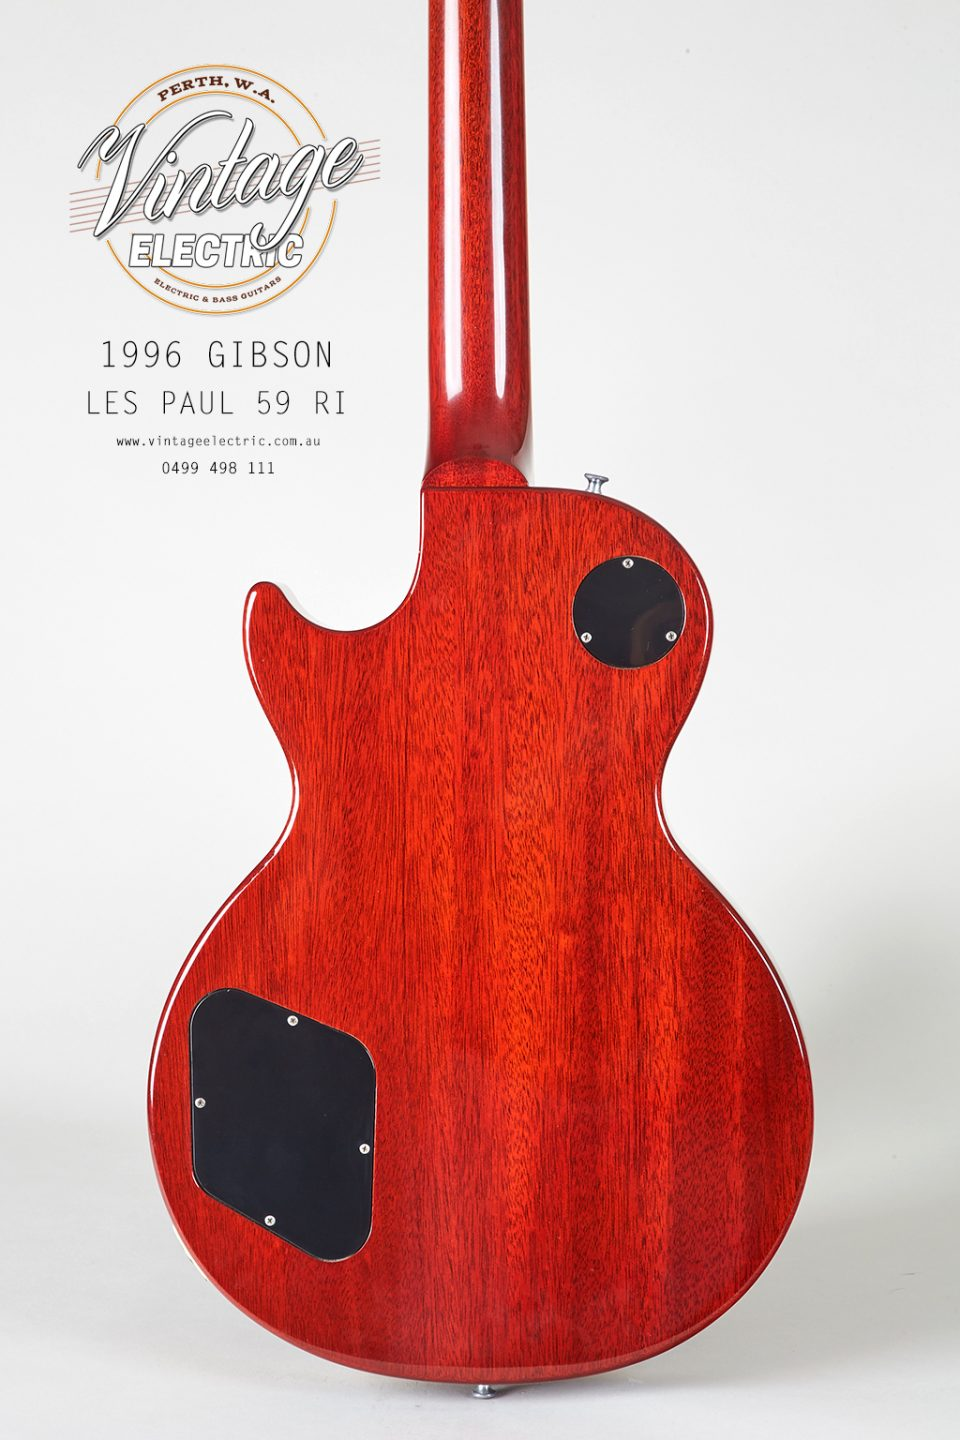 1996 Gibson Les Paul 59RI Back of Body